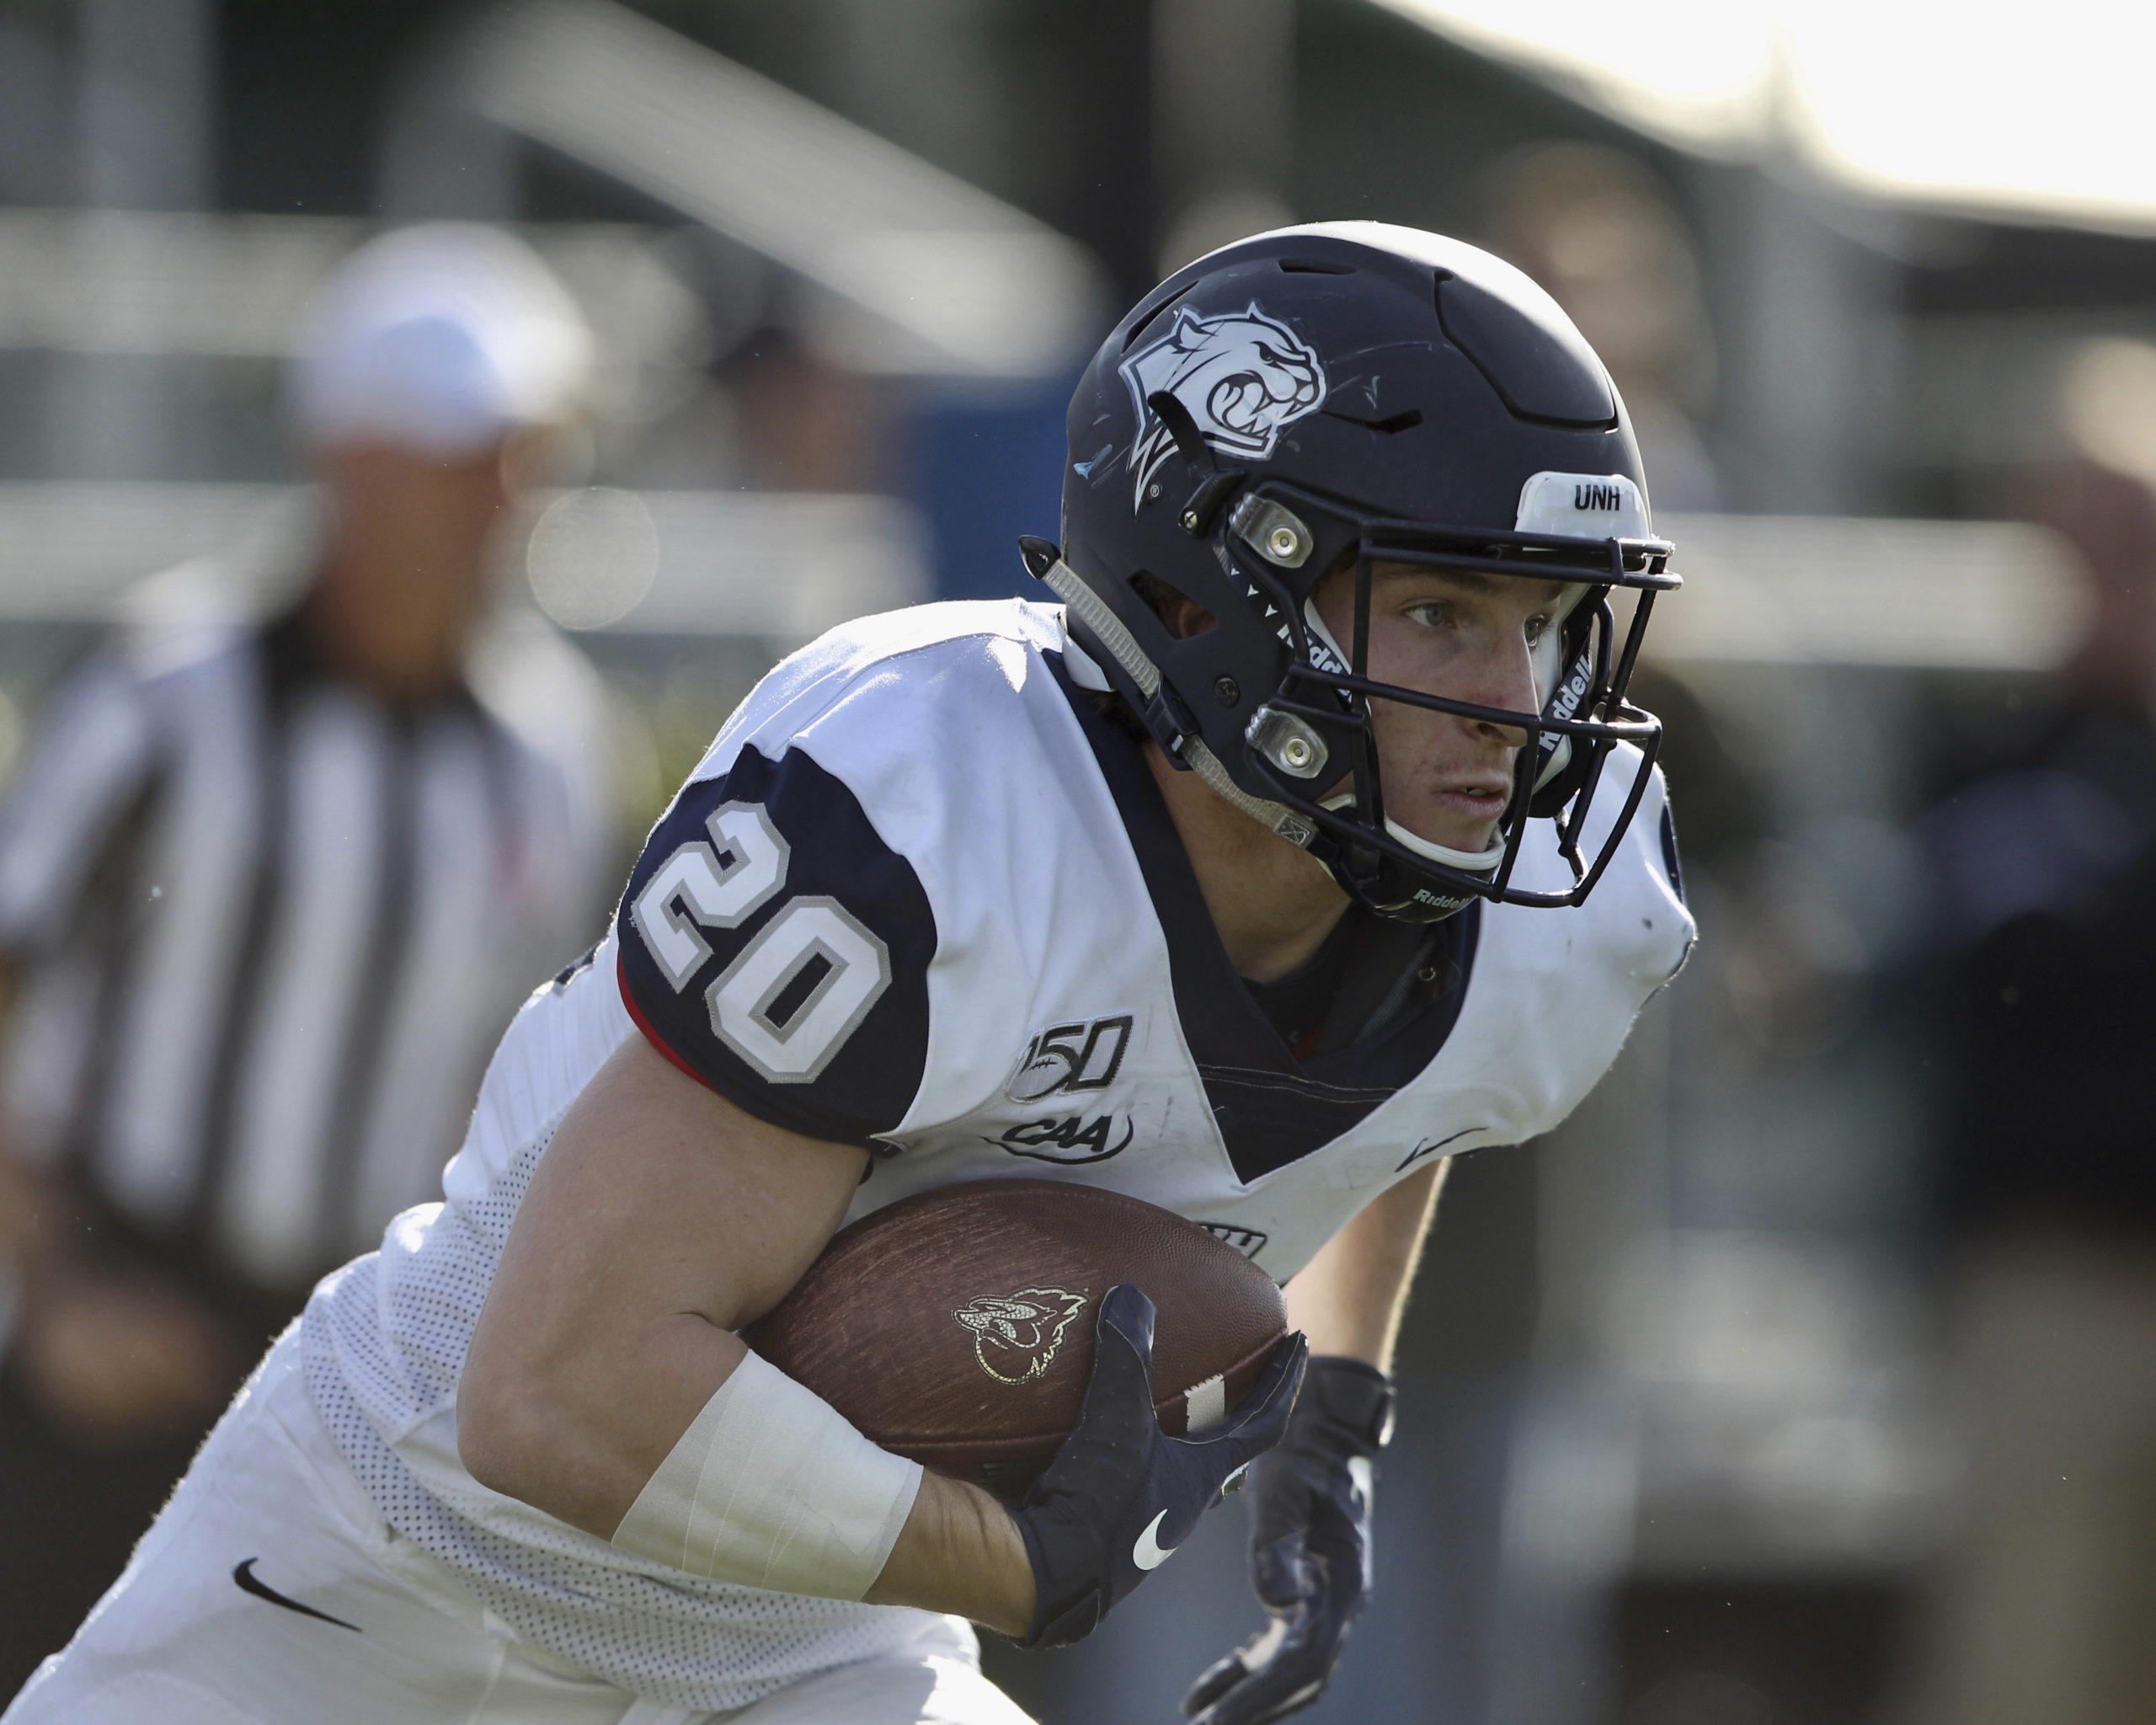 Westhampton Beach graduate Dylan Laube is in his junior season at the University of New Hampshire, trying to adjust to a new normal in the time of Covid-19. He and his UNH teammates are hoping they can play an abbreviated football season in the spring, and were allowed to practice this fall.       SCOTT GREENWALD